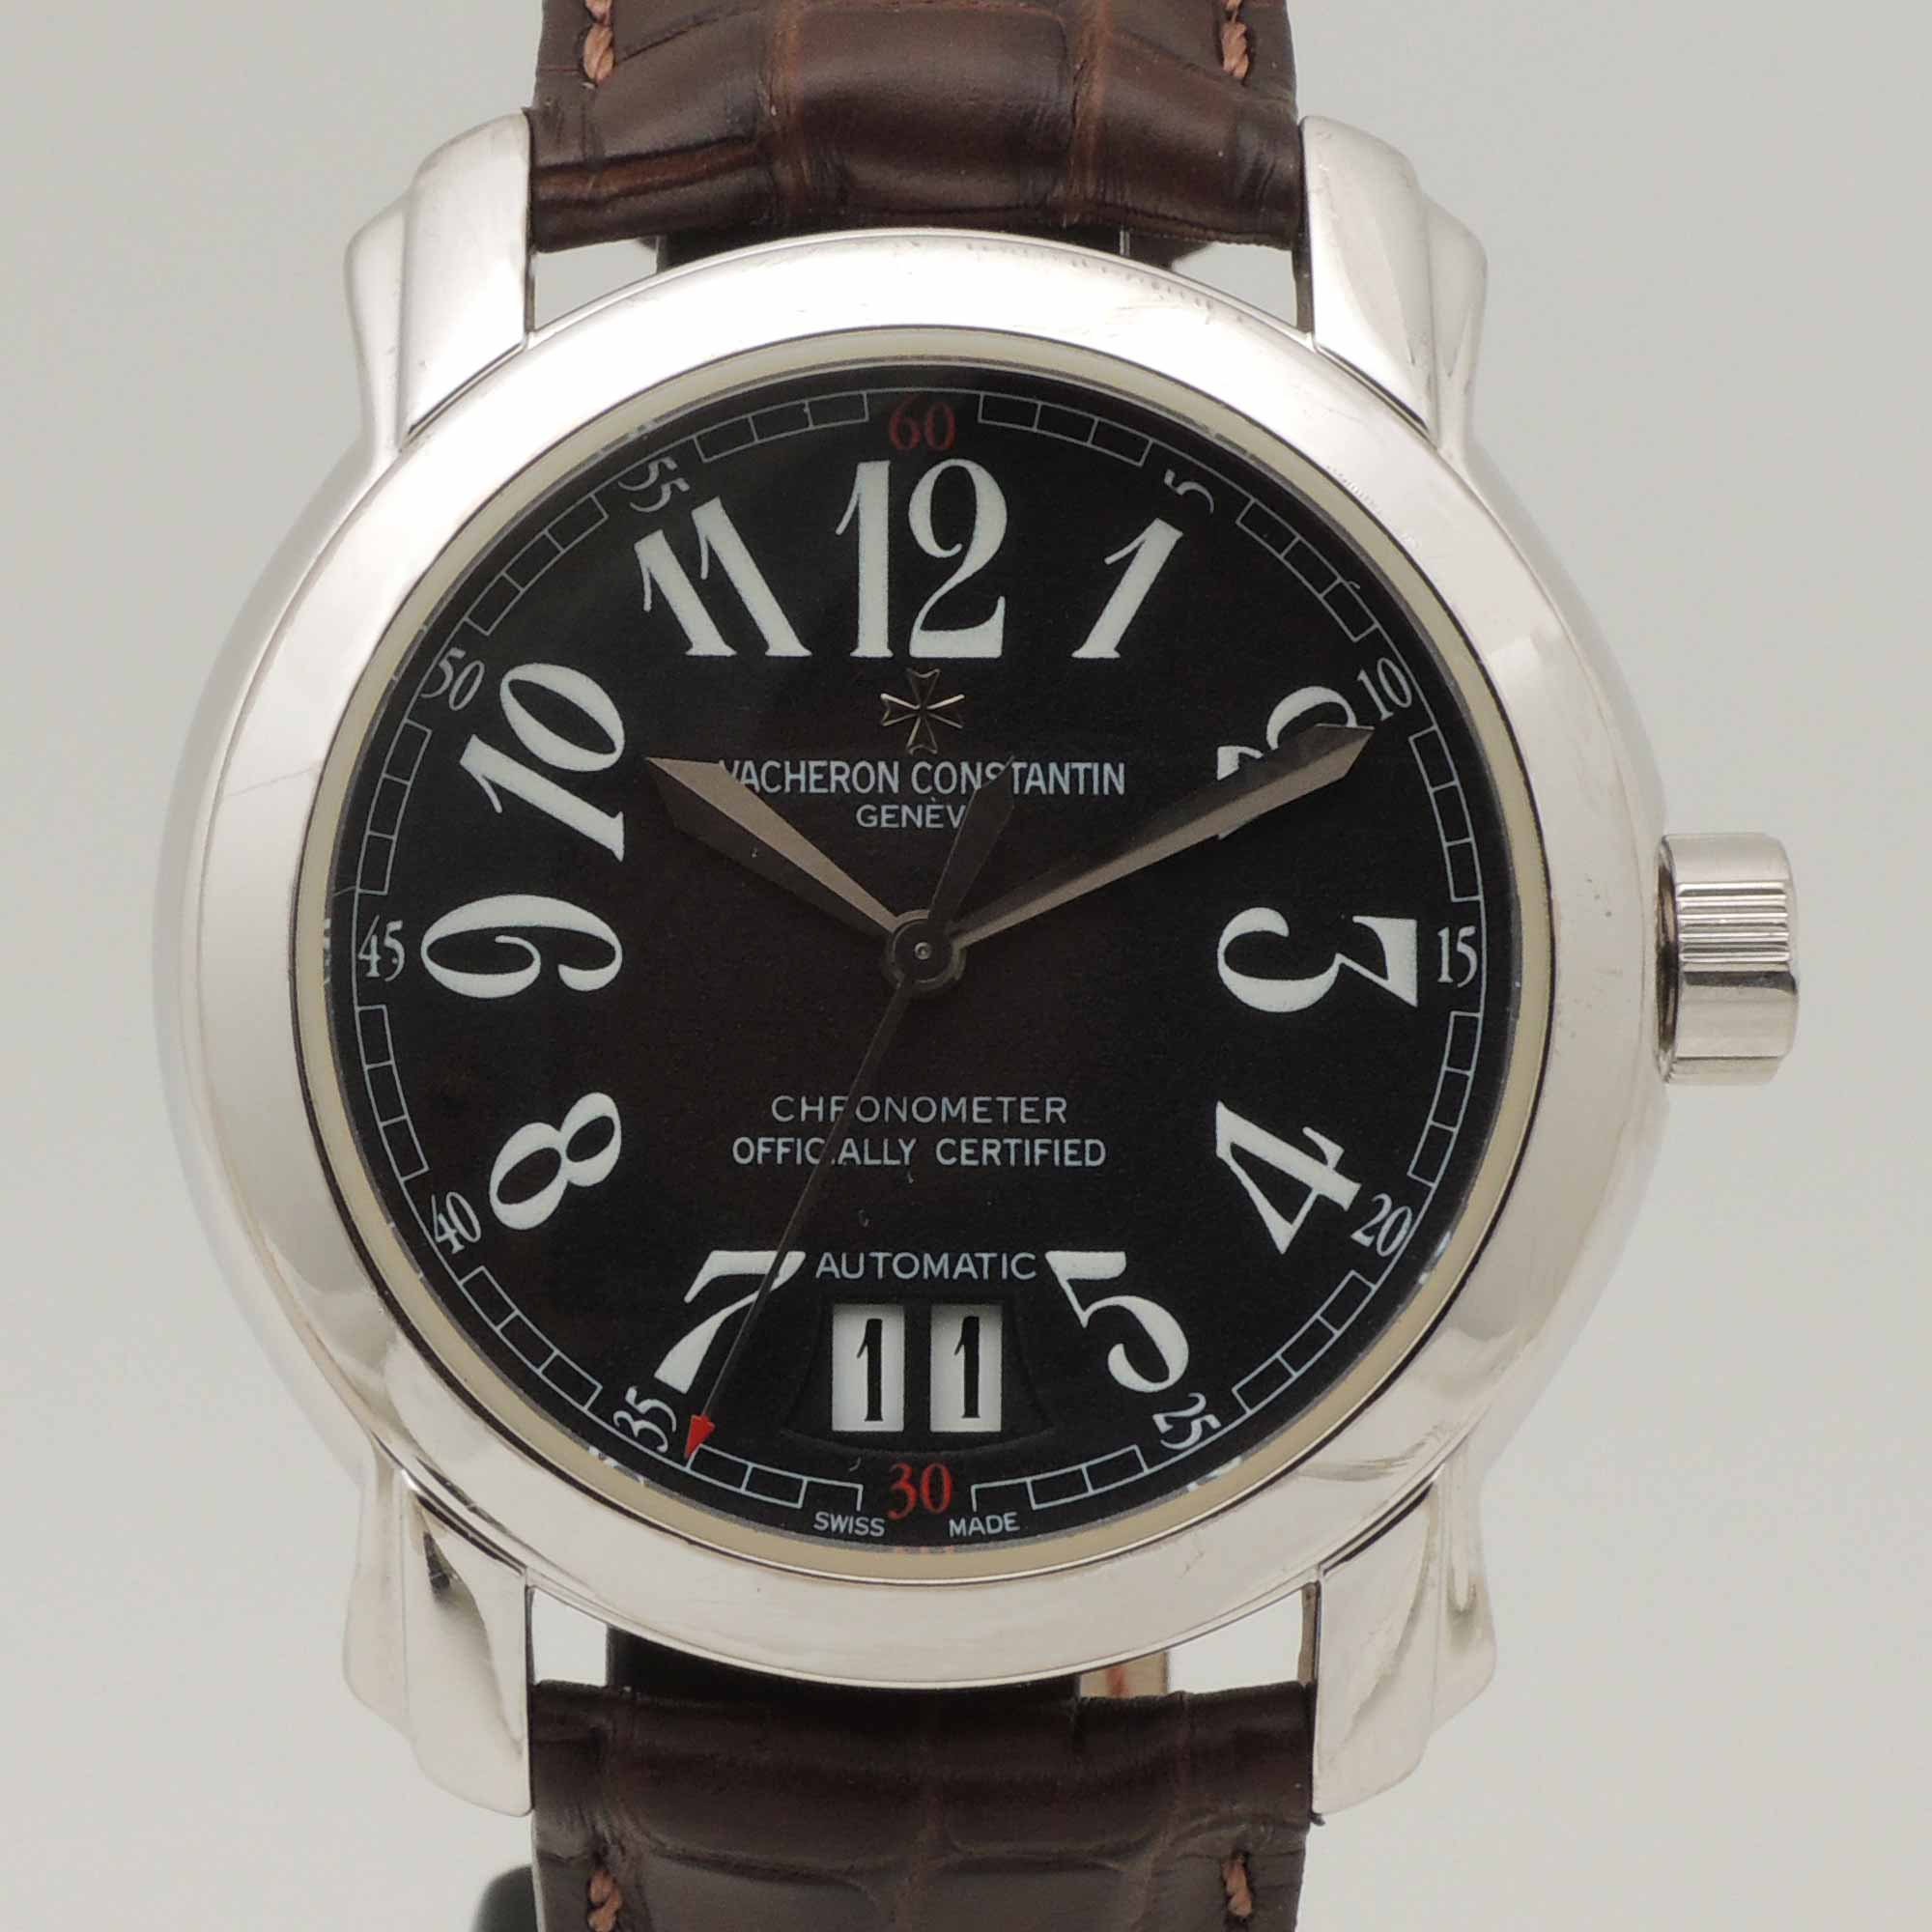 Purchase Vacheron Constantin Pocket Watch Serial Number and enjoy luxury feeling..